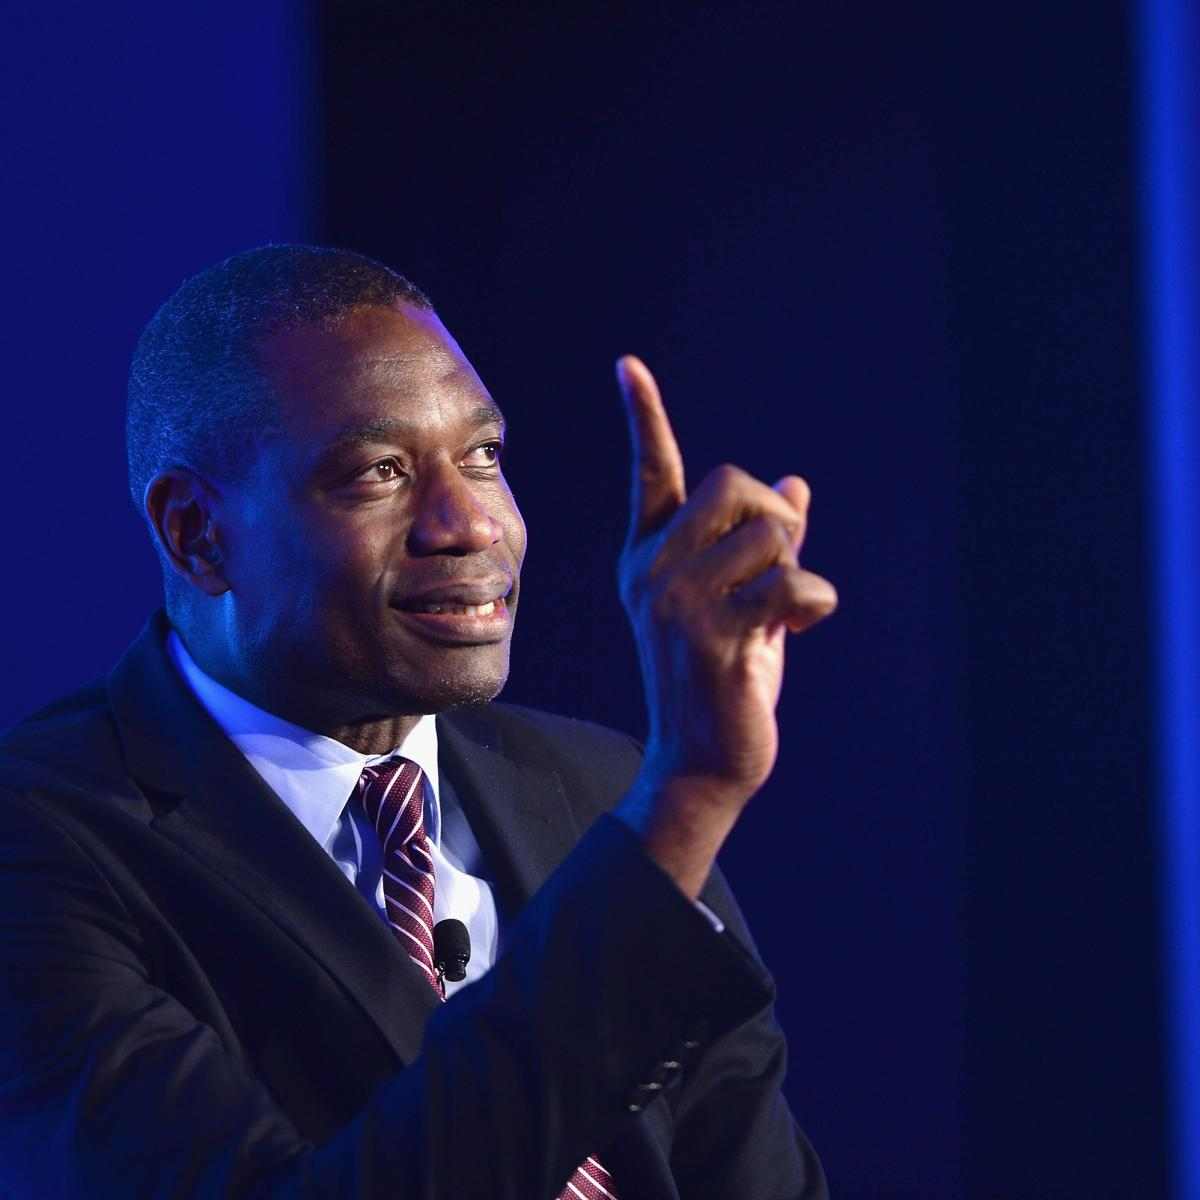 Dikembe Mutombo To Have Number Retired By Denver Nuggets